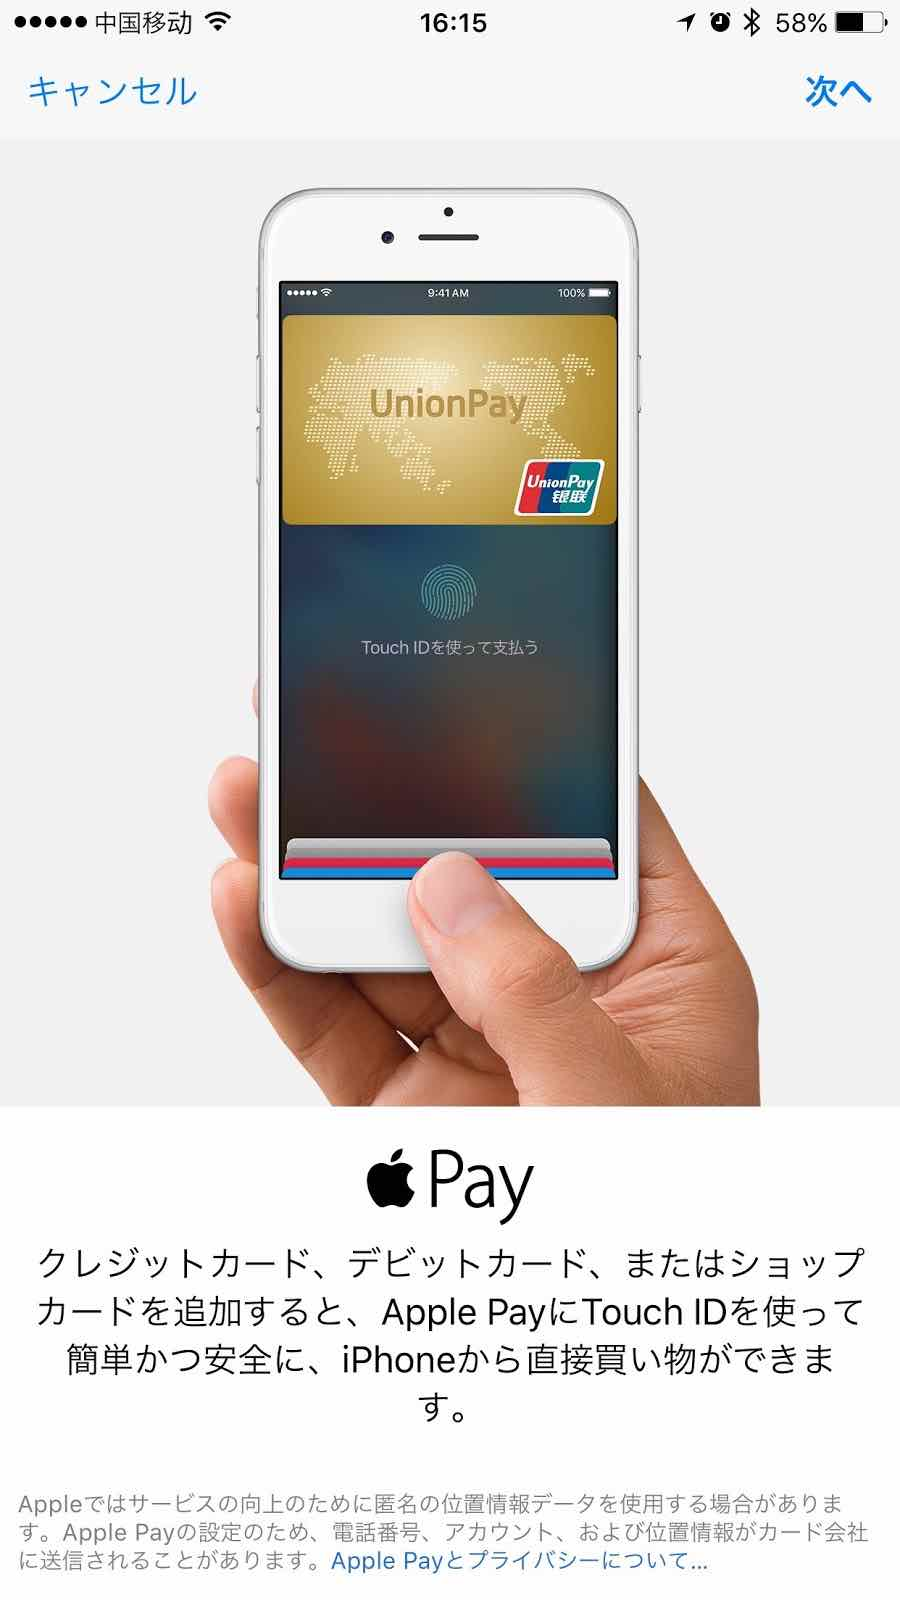 Apple Pay-CN1